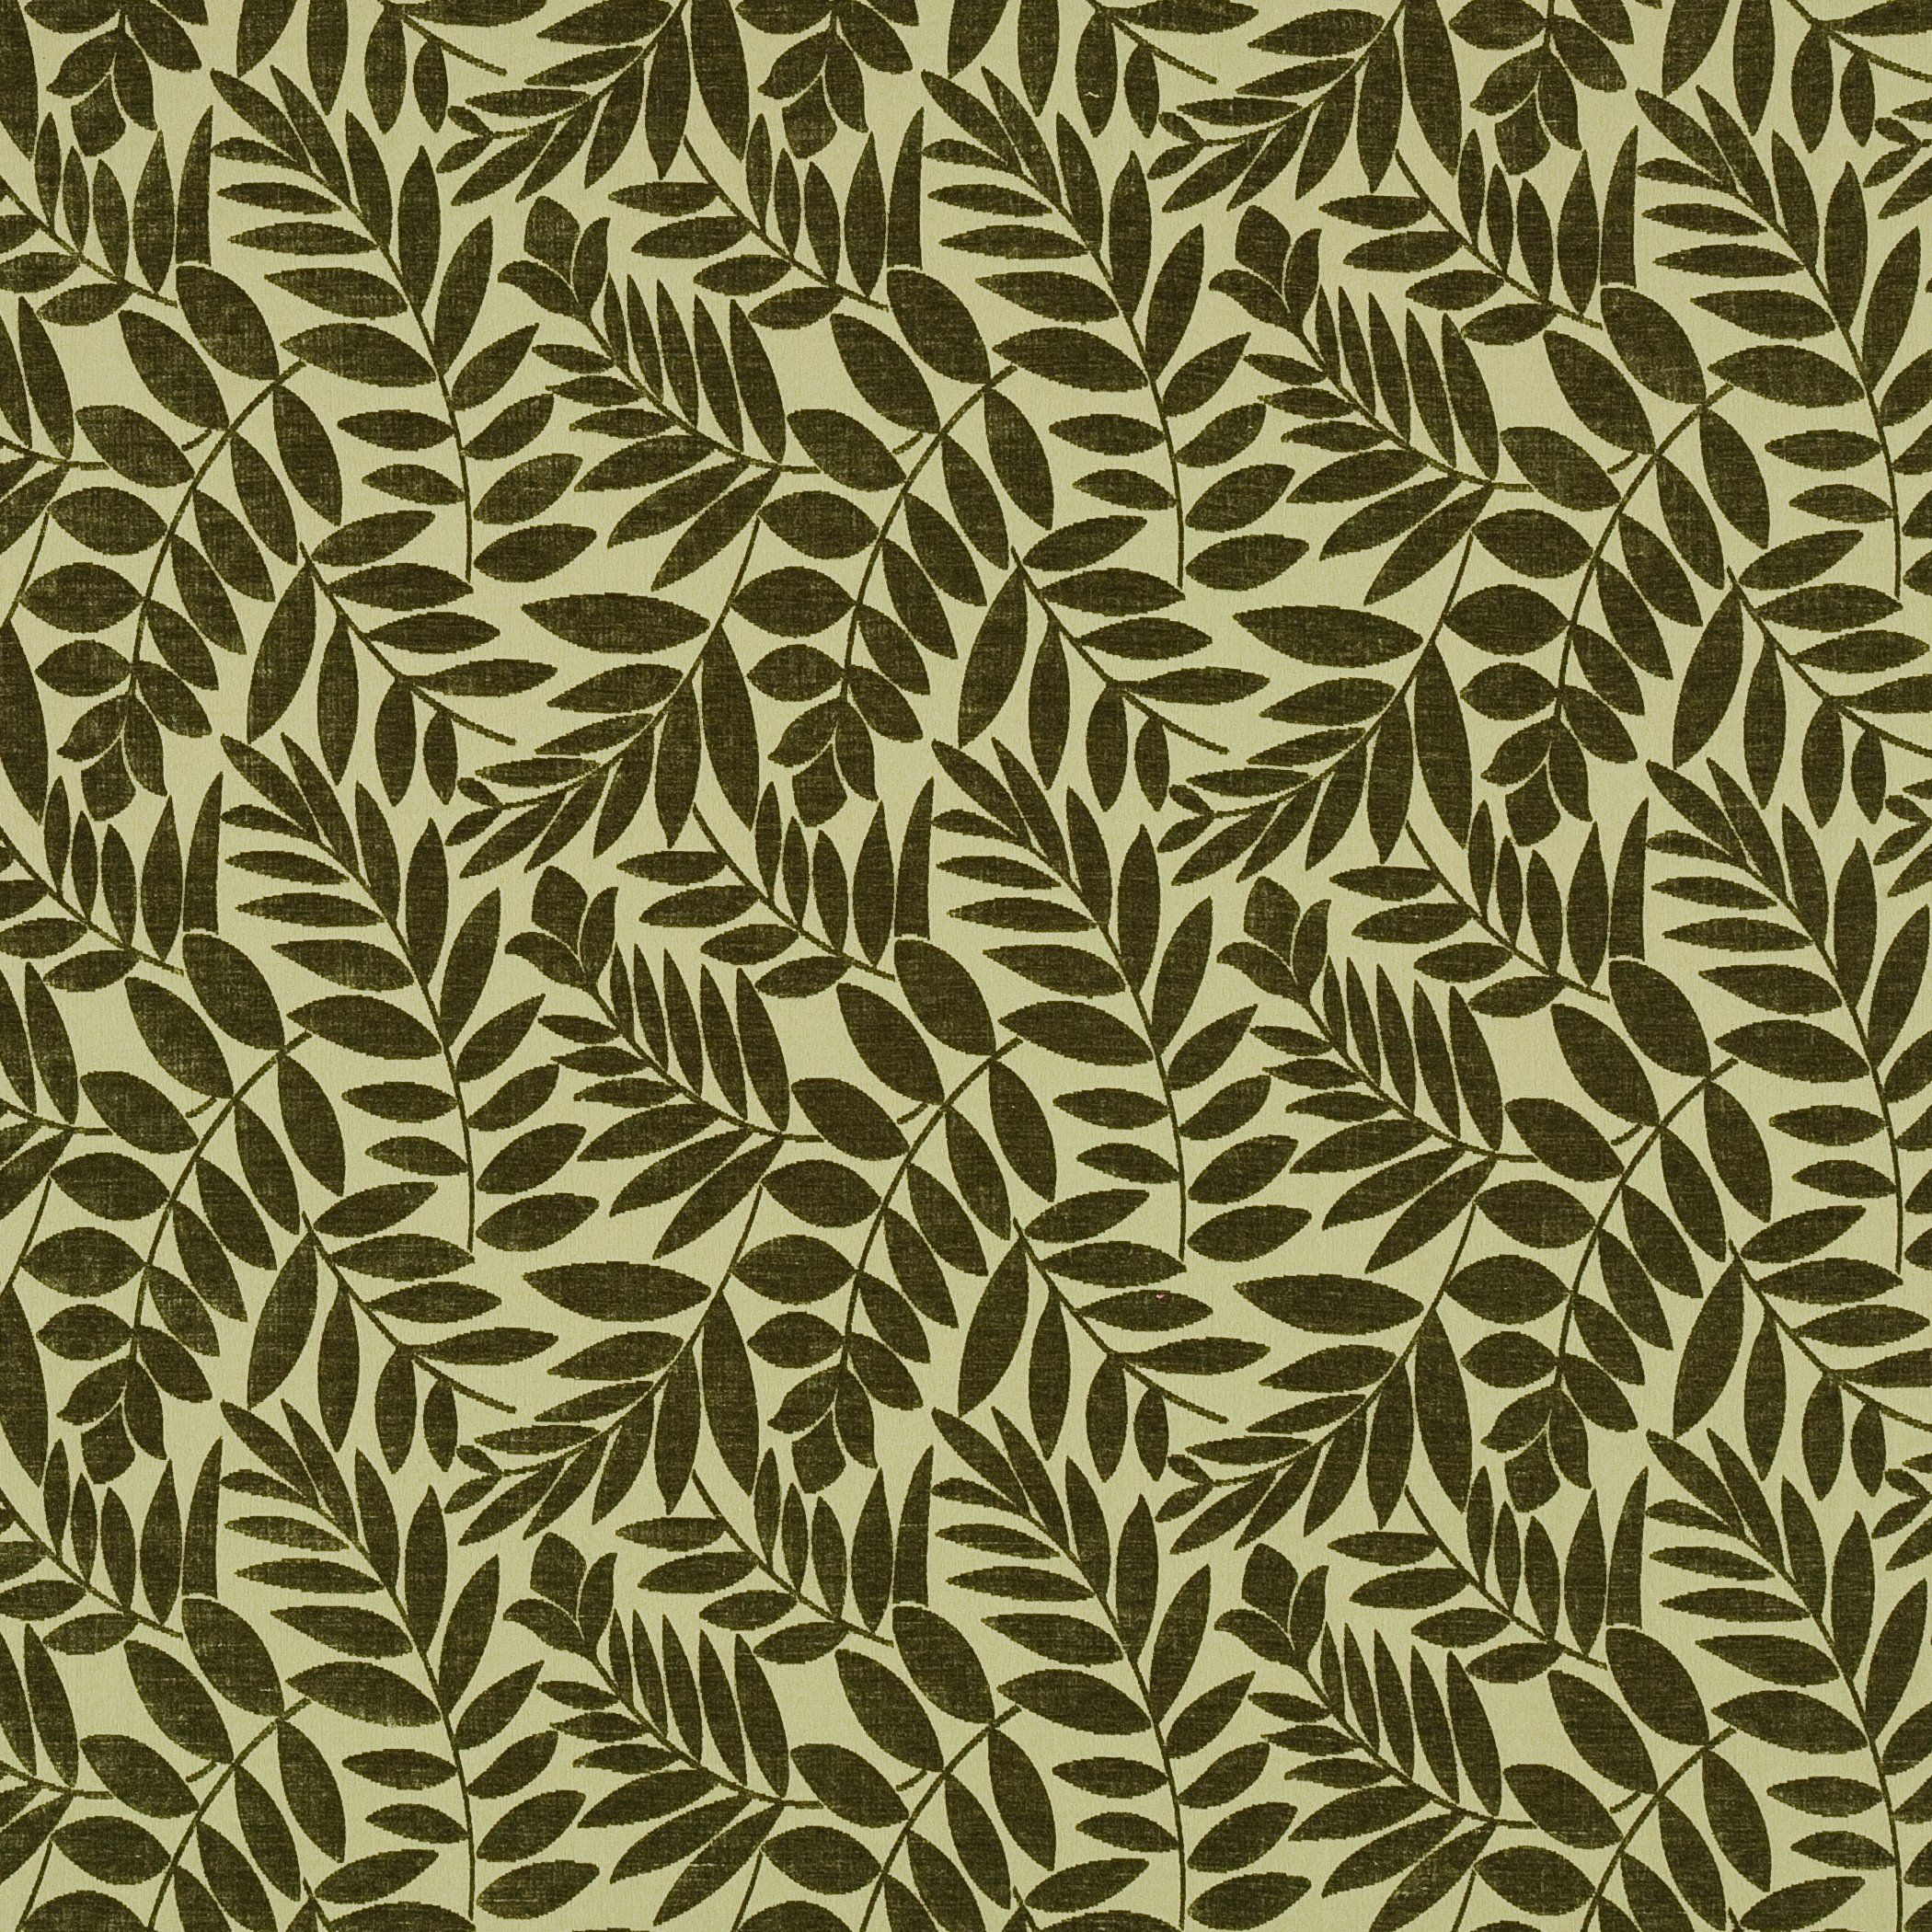 Arbor Crable Green Teal Hunter Forest Leaves Fl Upholstery Fabric